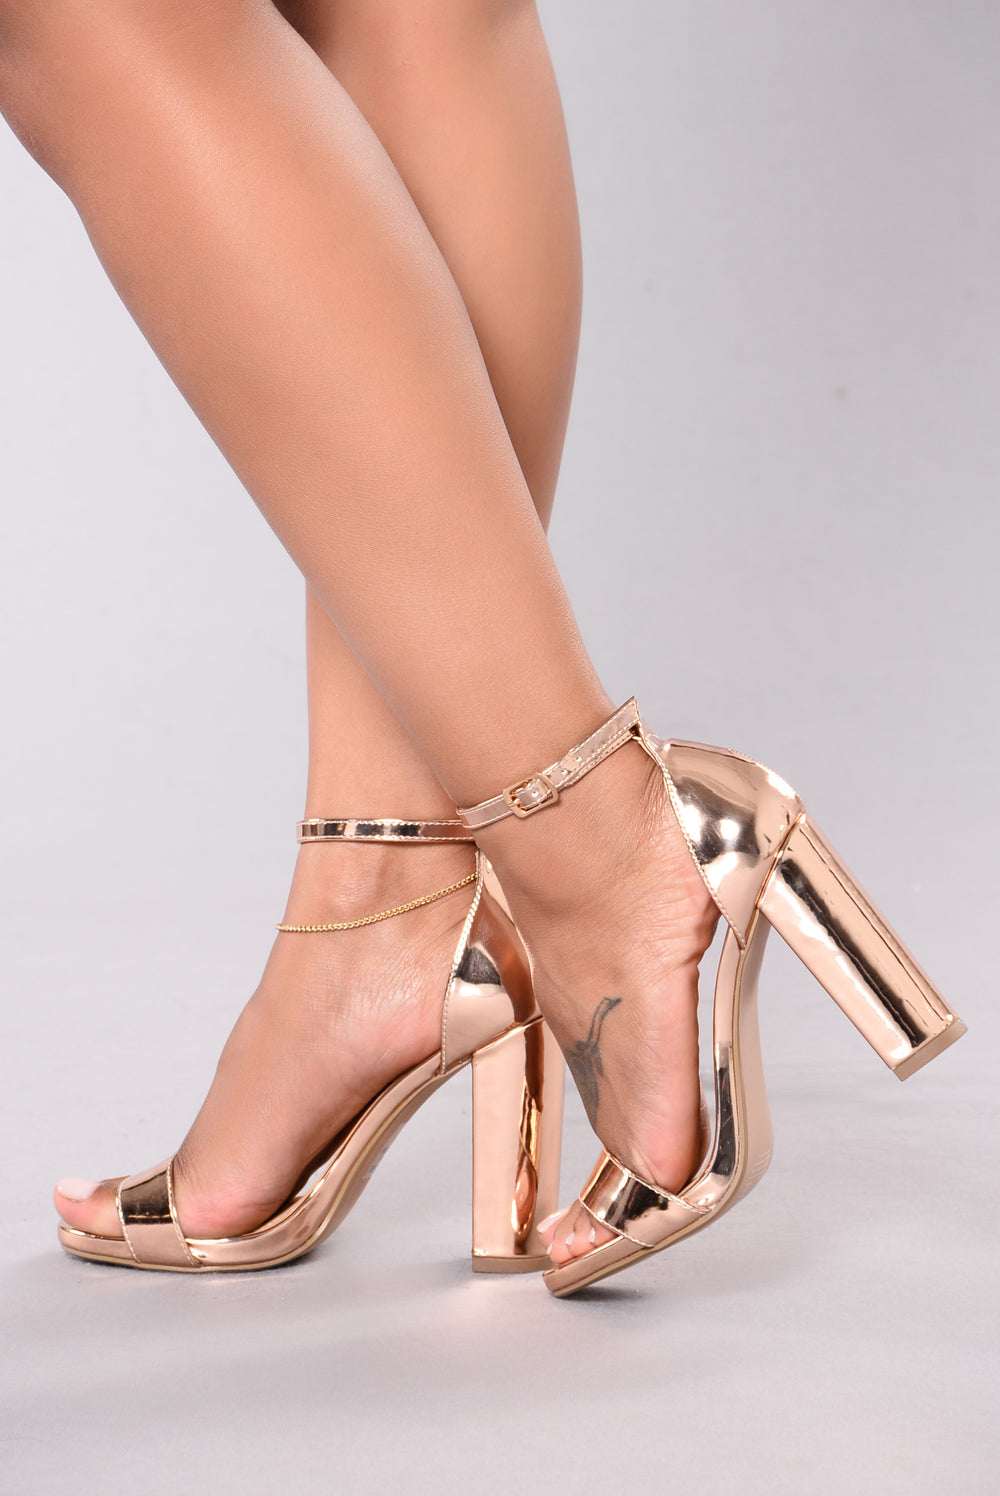 Mirror Mirror Heel - Rose Gold